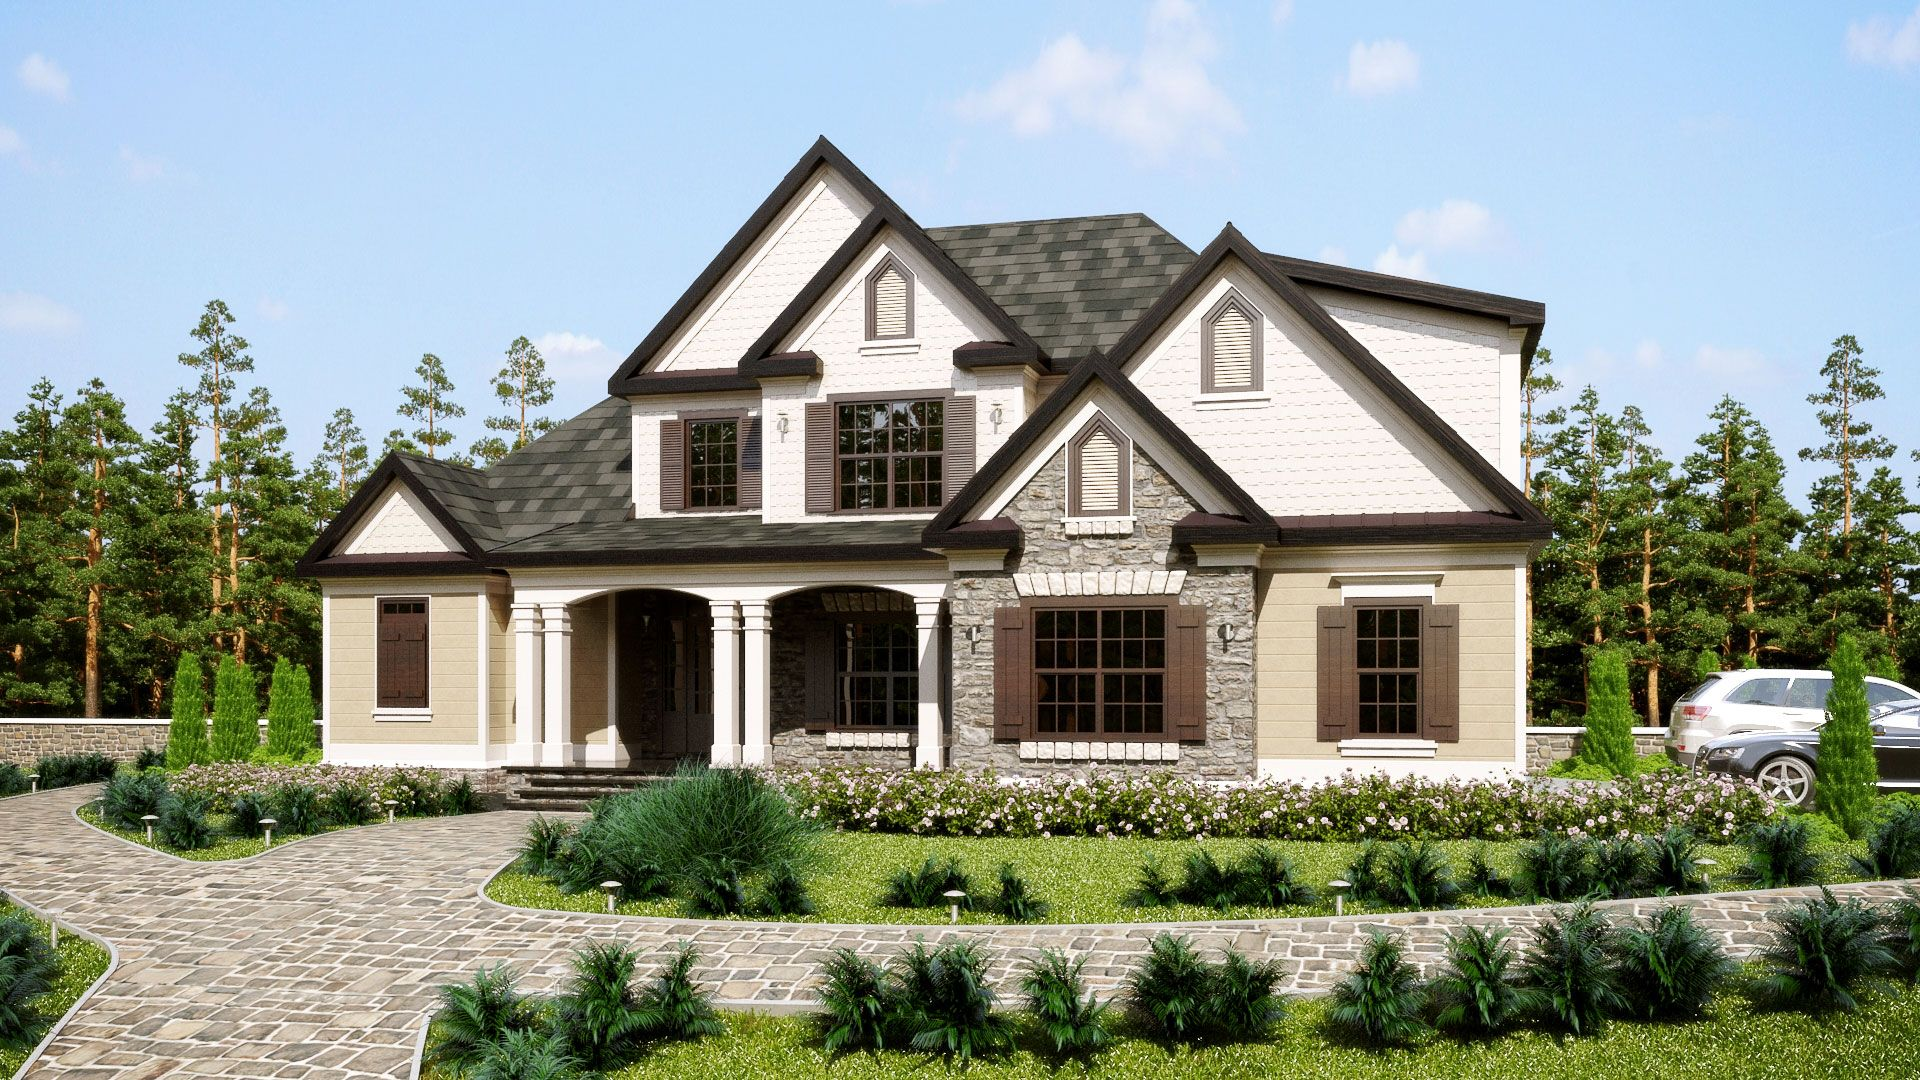 Three Story Southern Style House Plan With Front Porch Southern